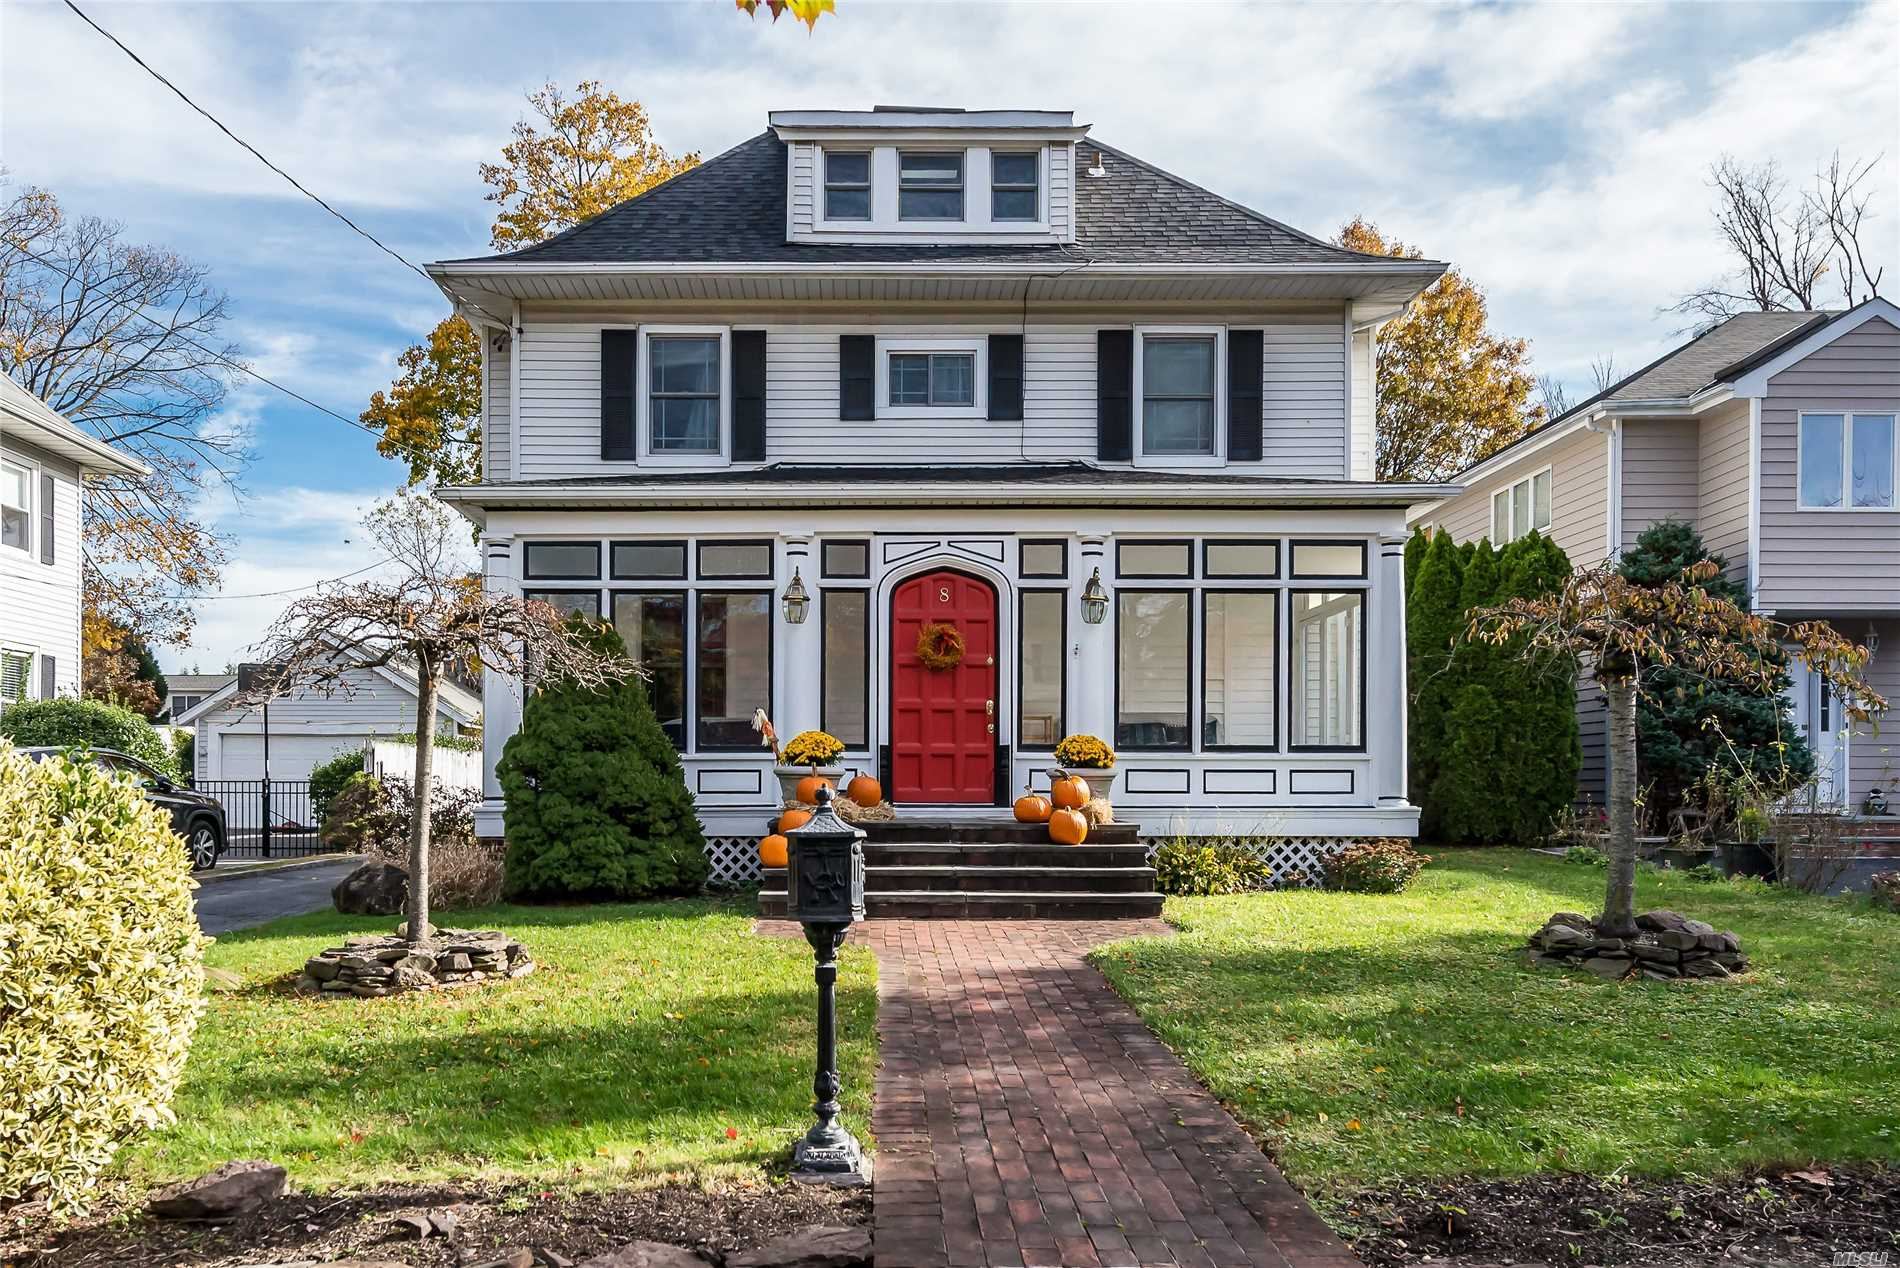 Small Dog Allowed With 2nd Security Deposit. No Cats. Excellent Credit. Furnished $3850/Month. Rental Insurance Required. Very Charming, Elegant, Well Maintained Colonial Circa 1915 Fab Enclosed Front Porch, Huge Eik, Crown Mouldings, Updated Baths, Heating System, Roof, Windows. Full Finished Bsmt W/ Ose. Ag Pool Surrounded By Trex Decking. A Wonderful Home To Entertain In. Close To Beach And Sunsets!